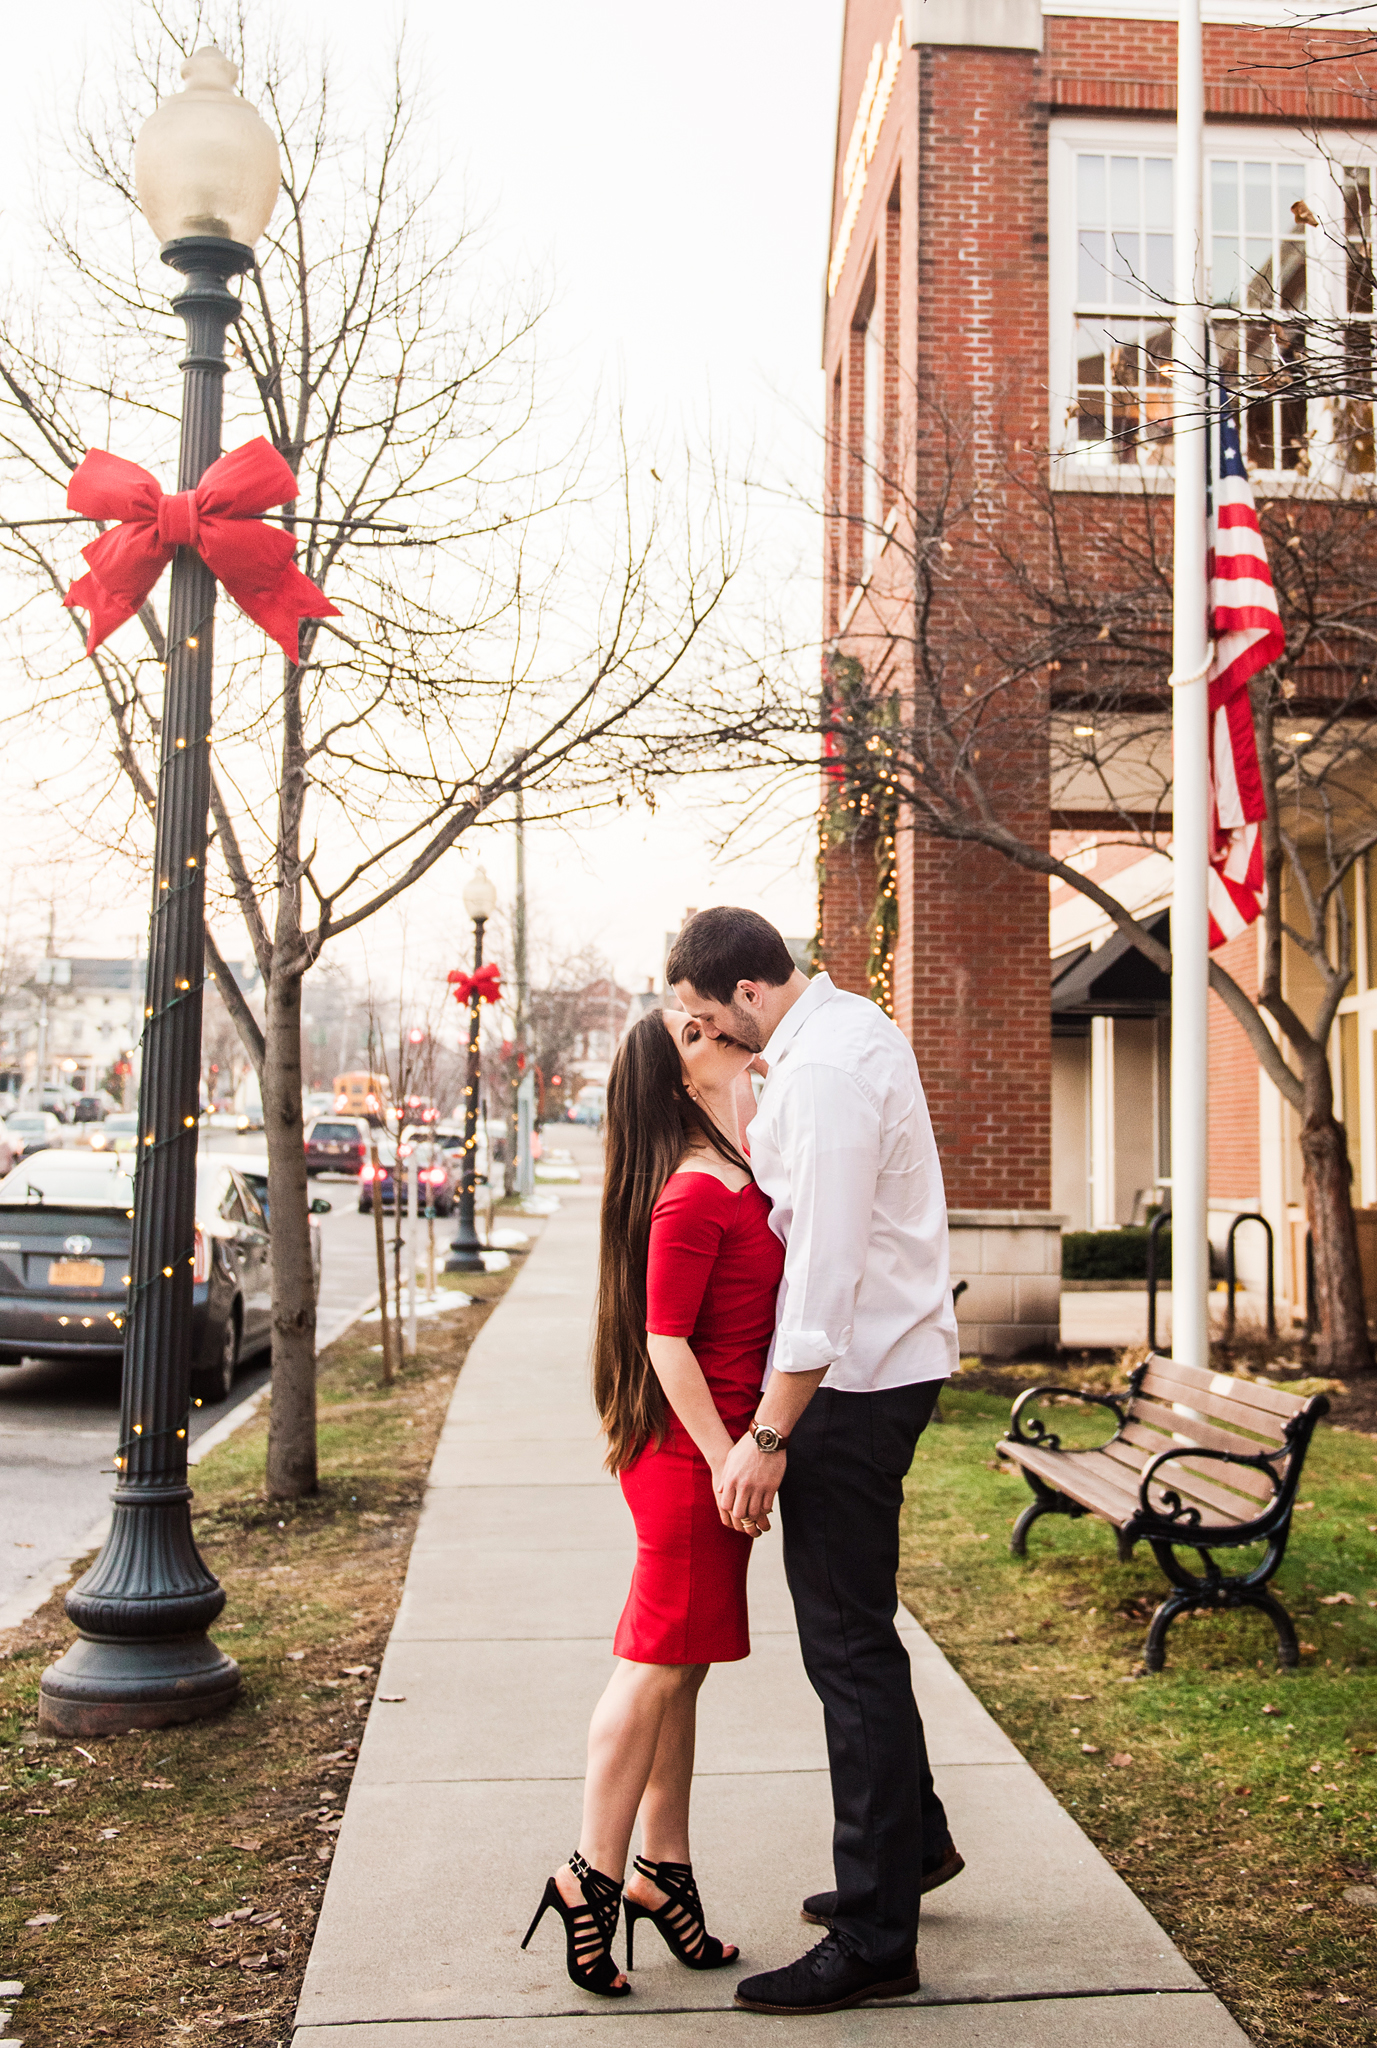 Schoen_Place_Rochester_Engagement_Session_JILL_STUDIO_Rochester_NY_Photographer_DSC_2289.jpg